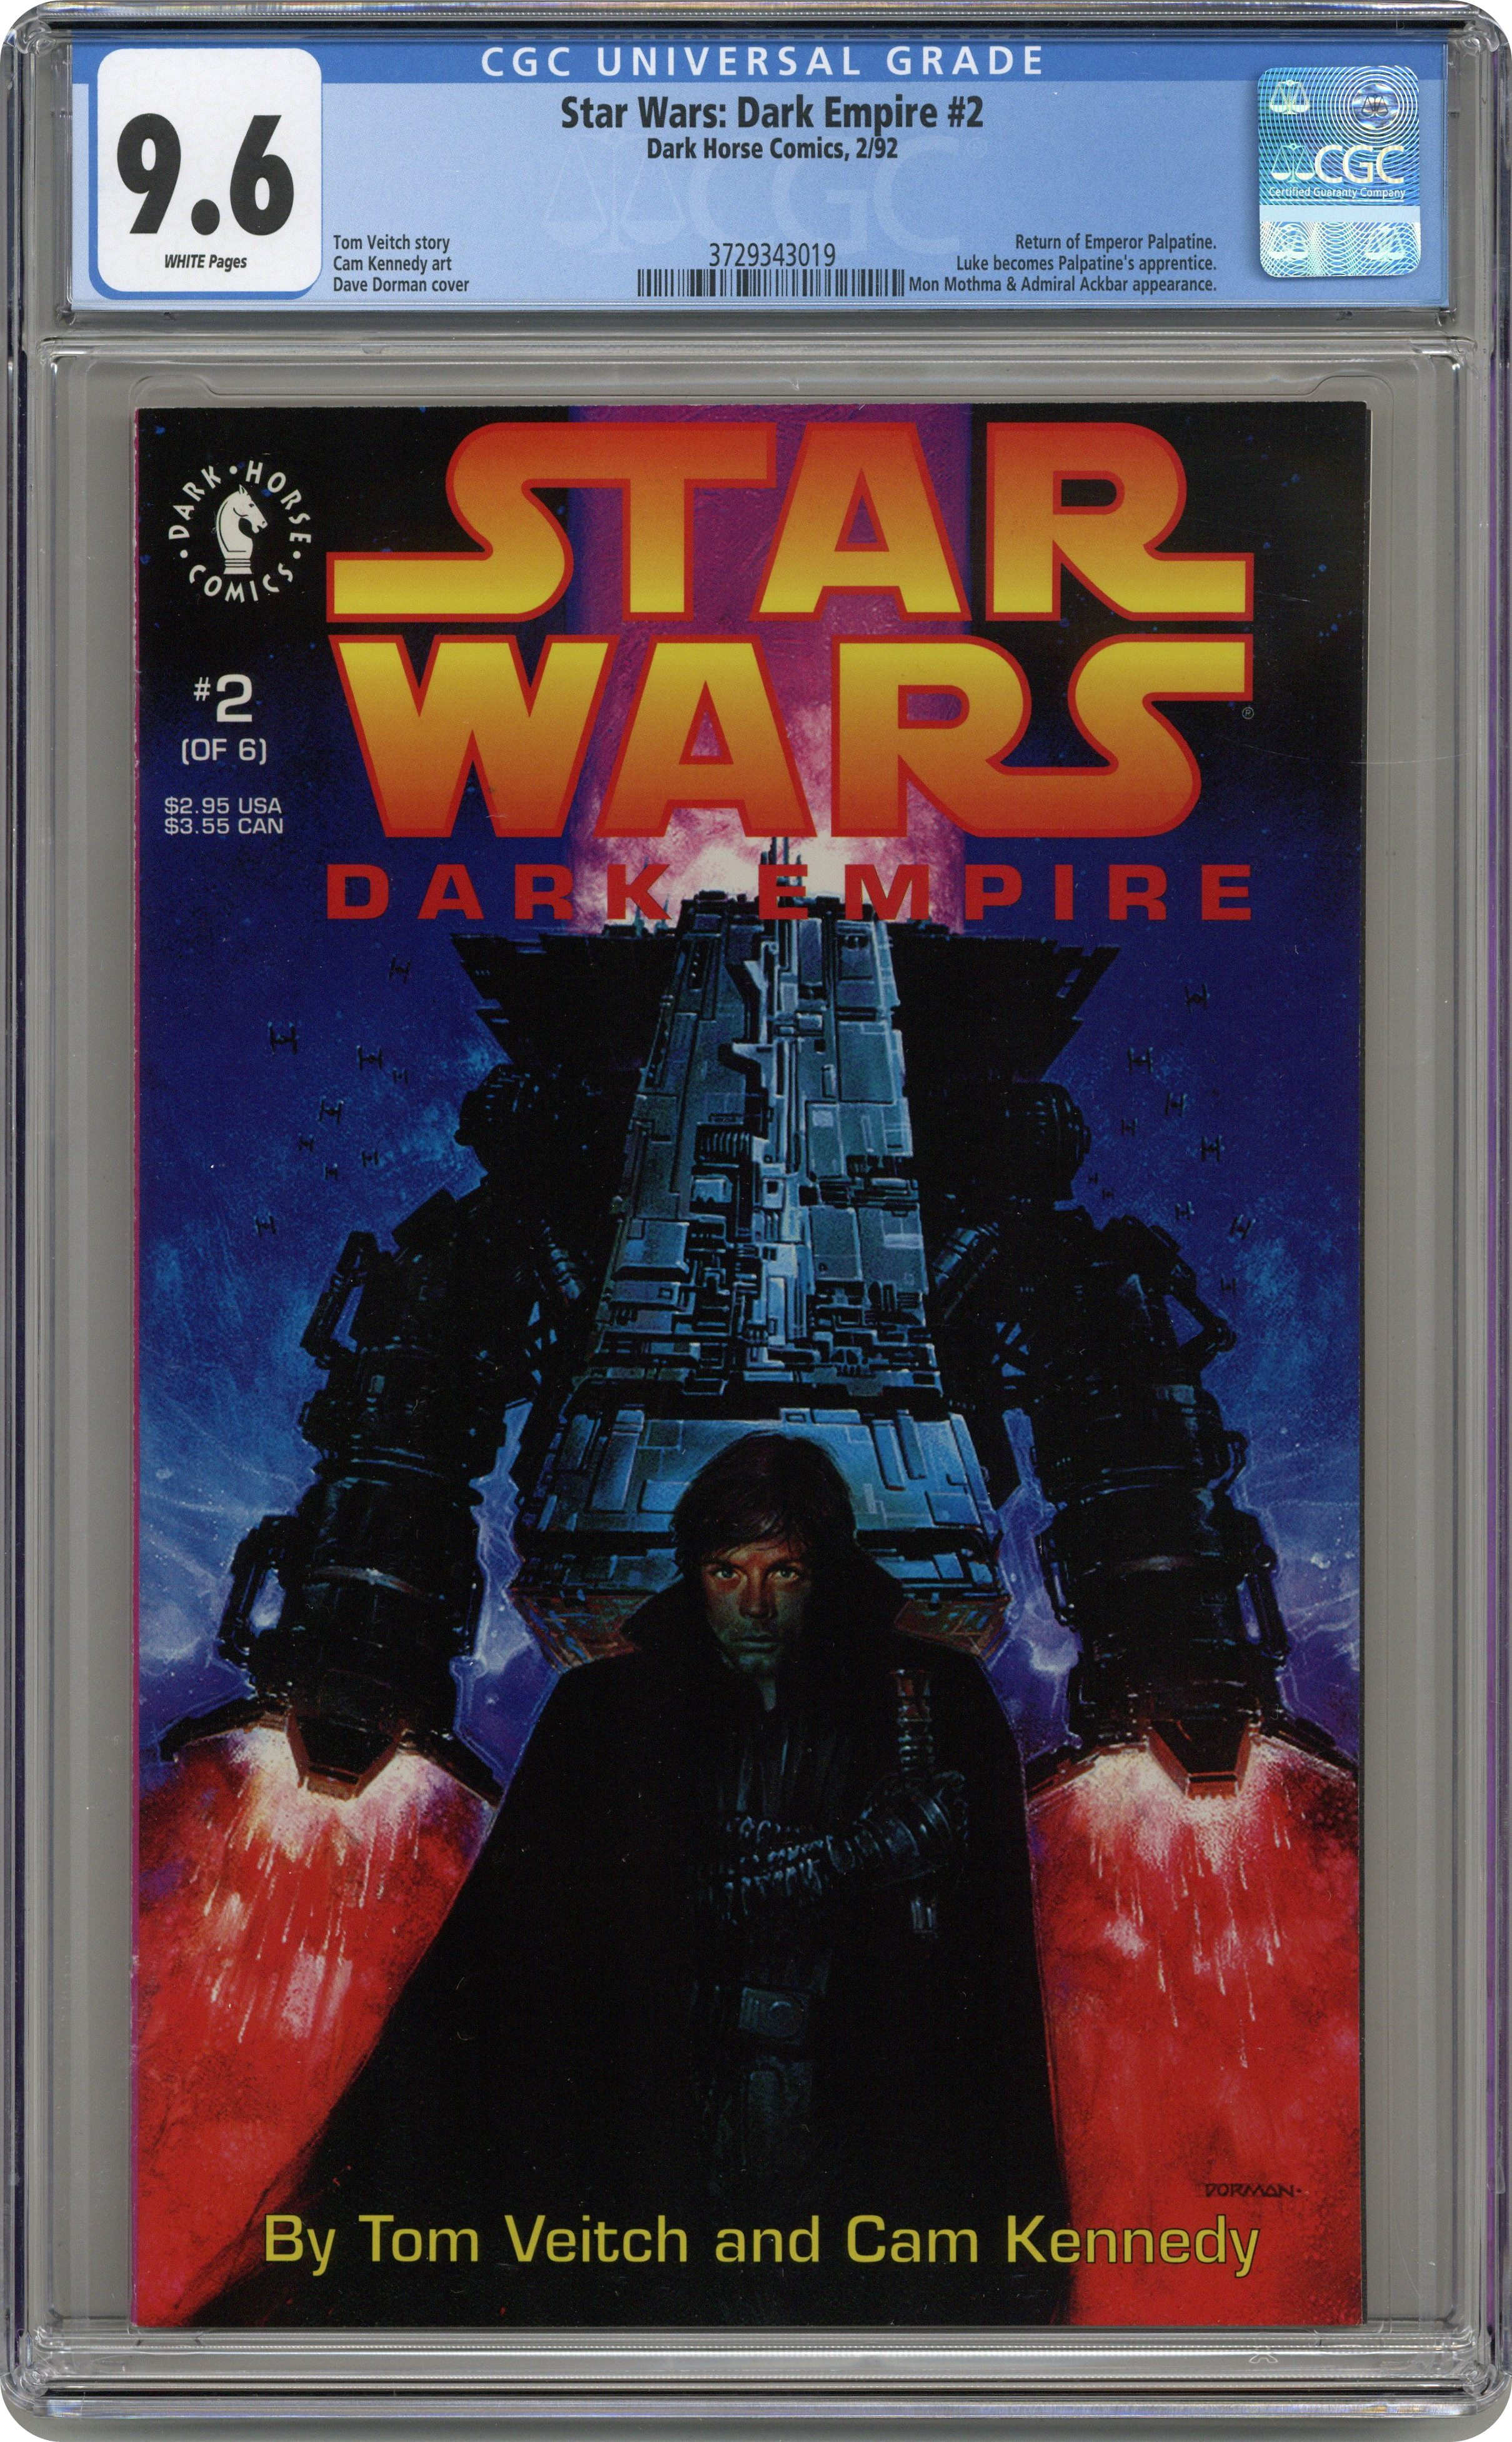 STAR WARS JEDI KNIGHTS MASTERS OF THE FORCE GOLD FOIL 55